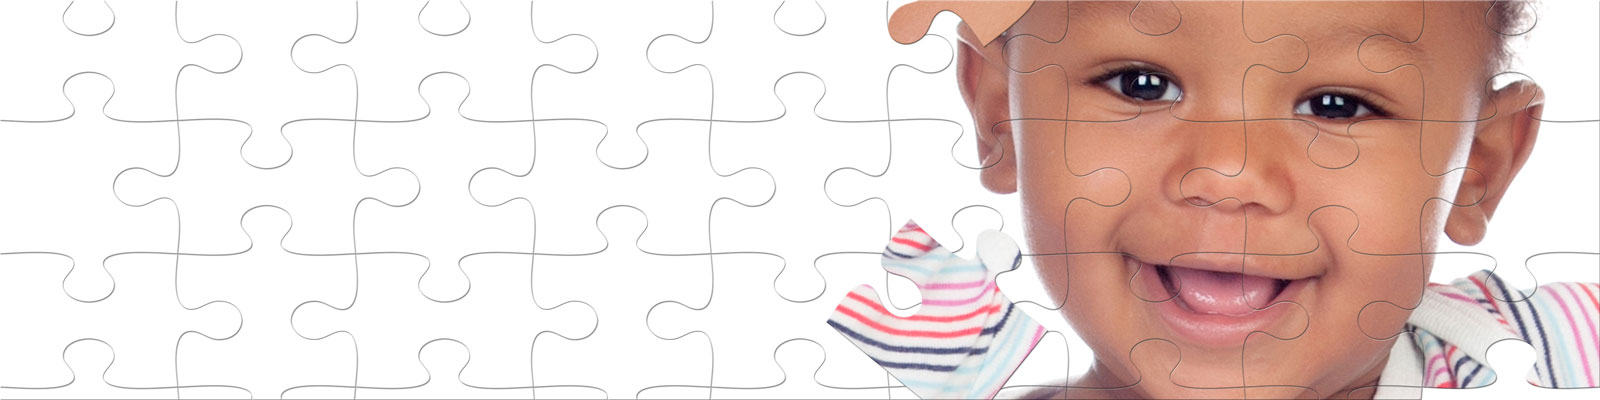 Child Autism Puzzle - ASD - Communicating Above Barriers